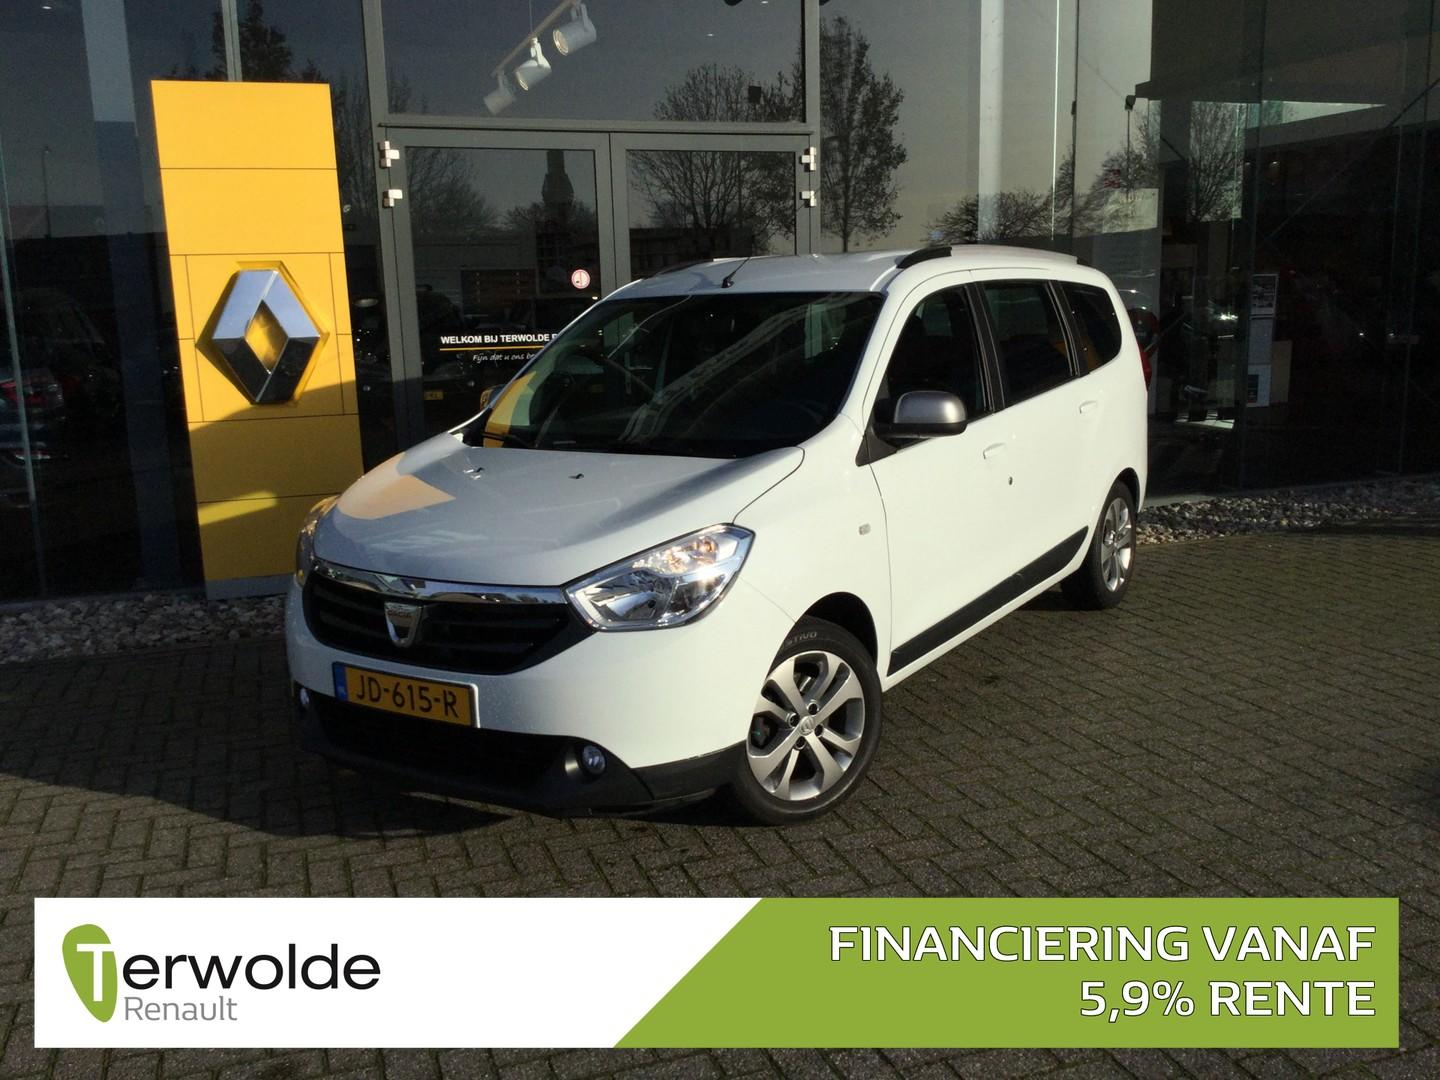 Dacia Lodgy 1.2 tce 10th anniversary 7persoons